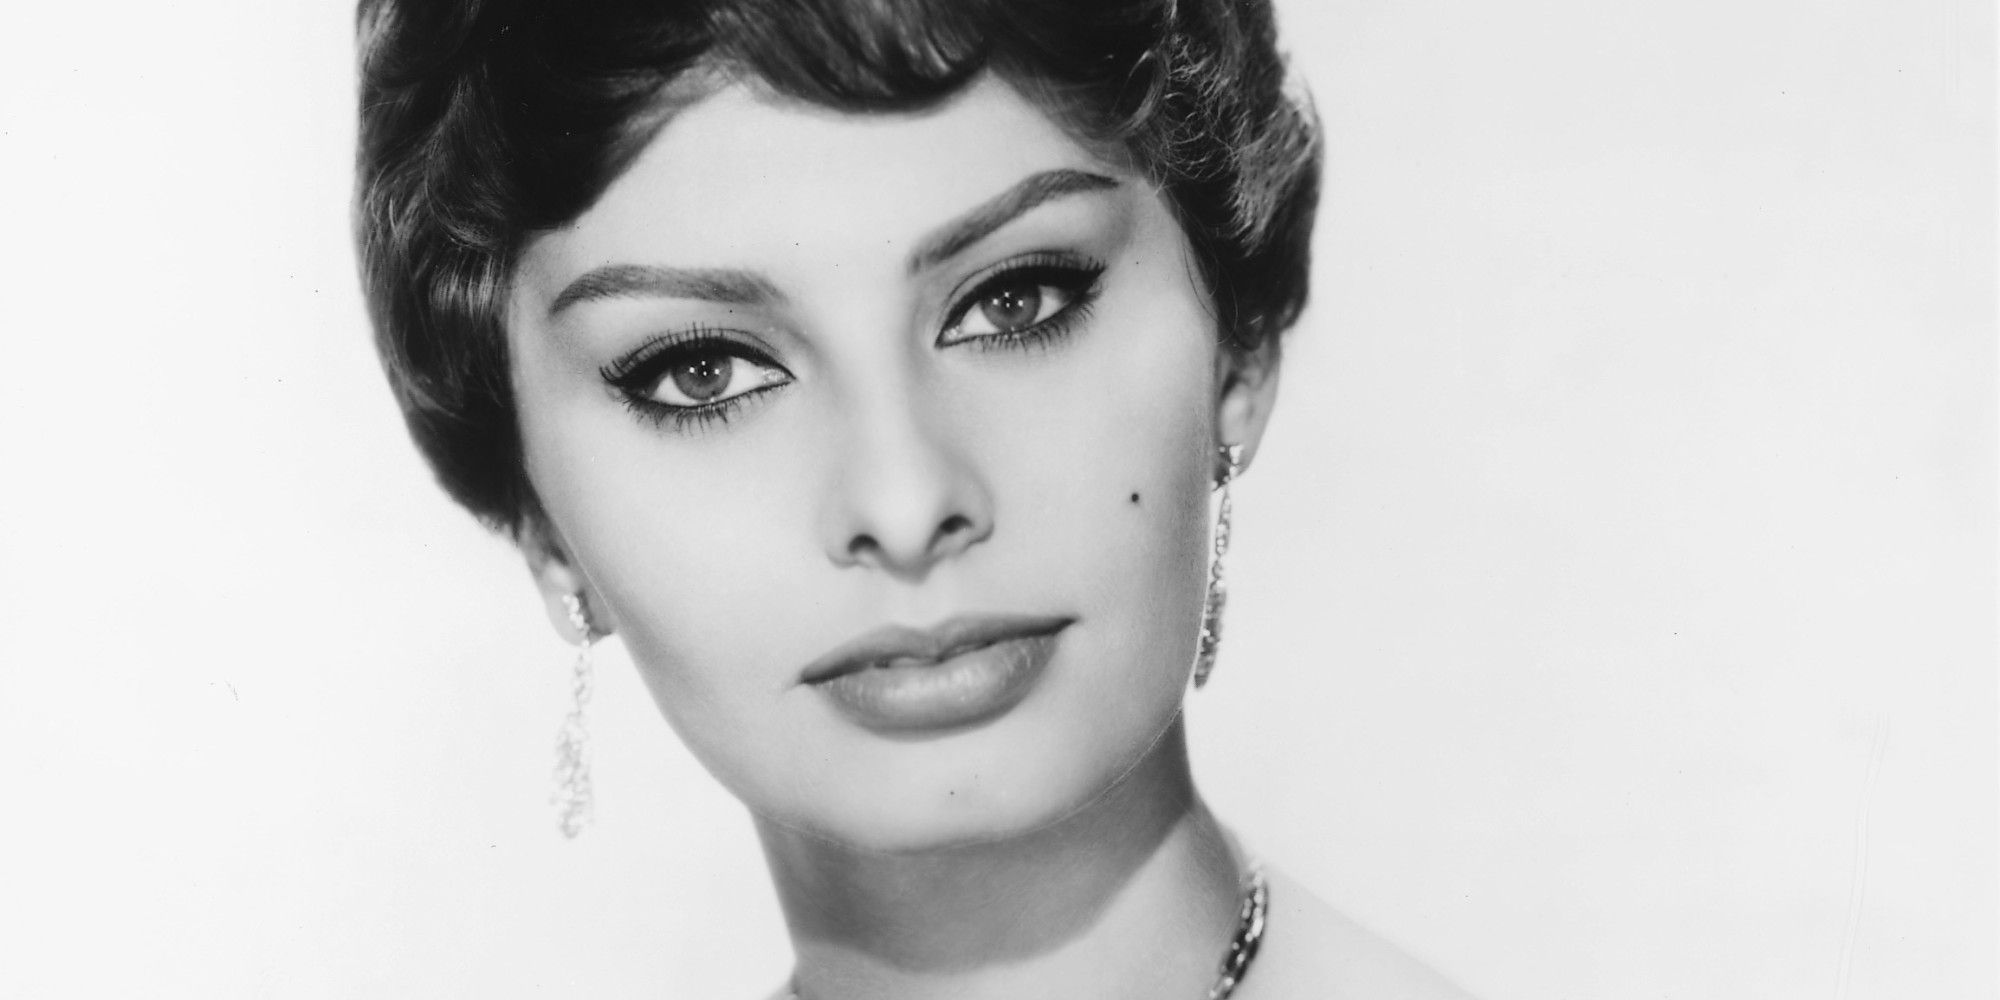 sophia loren s response to plastic surgery pressure is awesome sophia loren is regarded as one of the most beautiful actresses of all time but